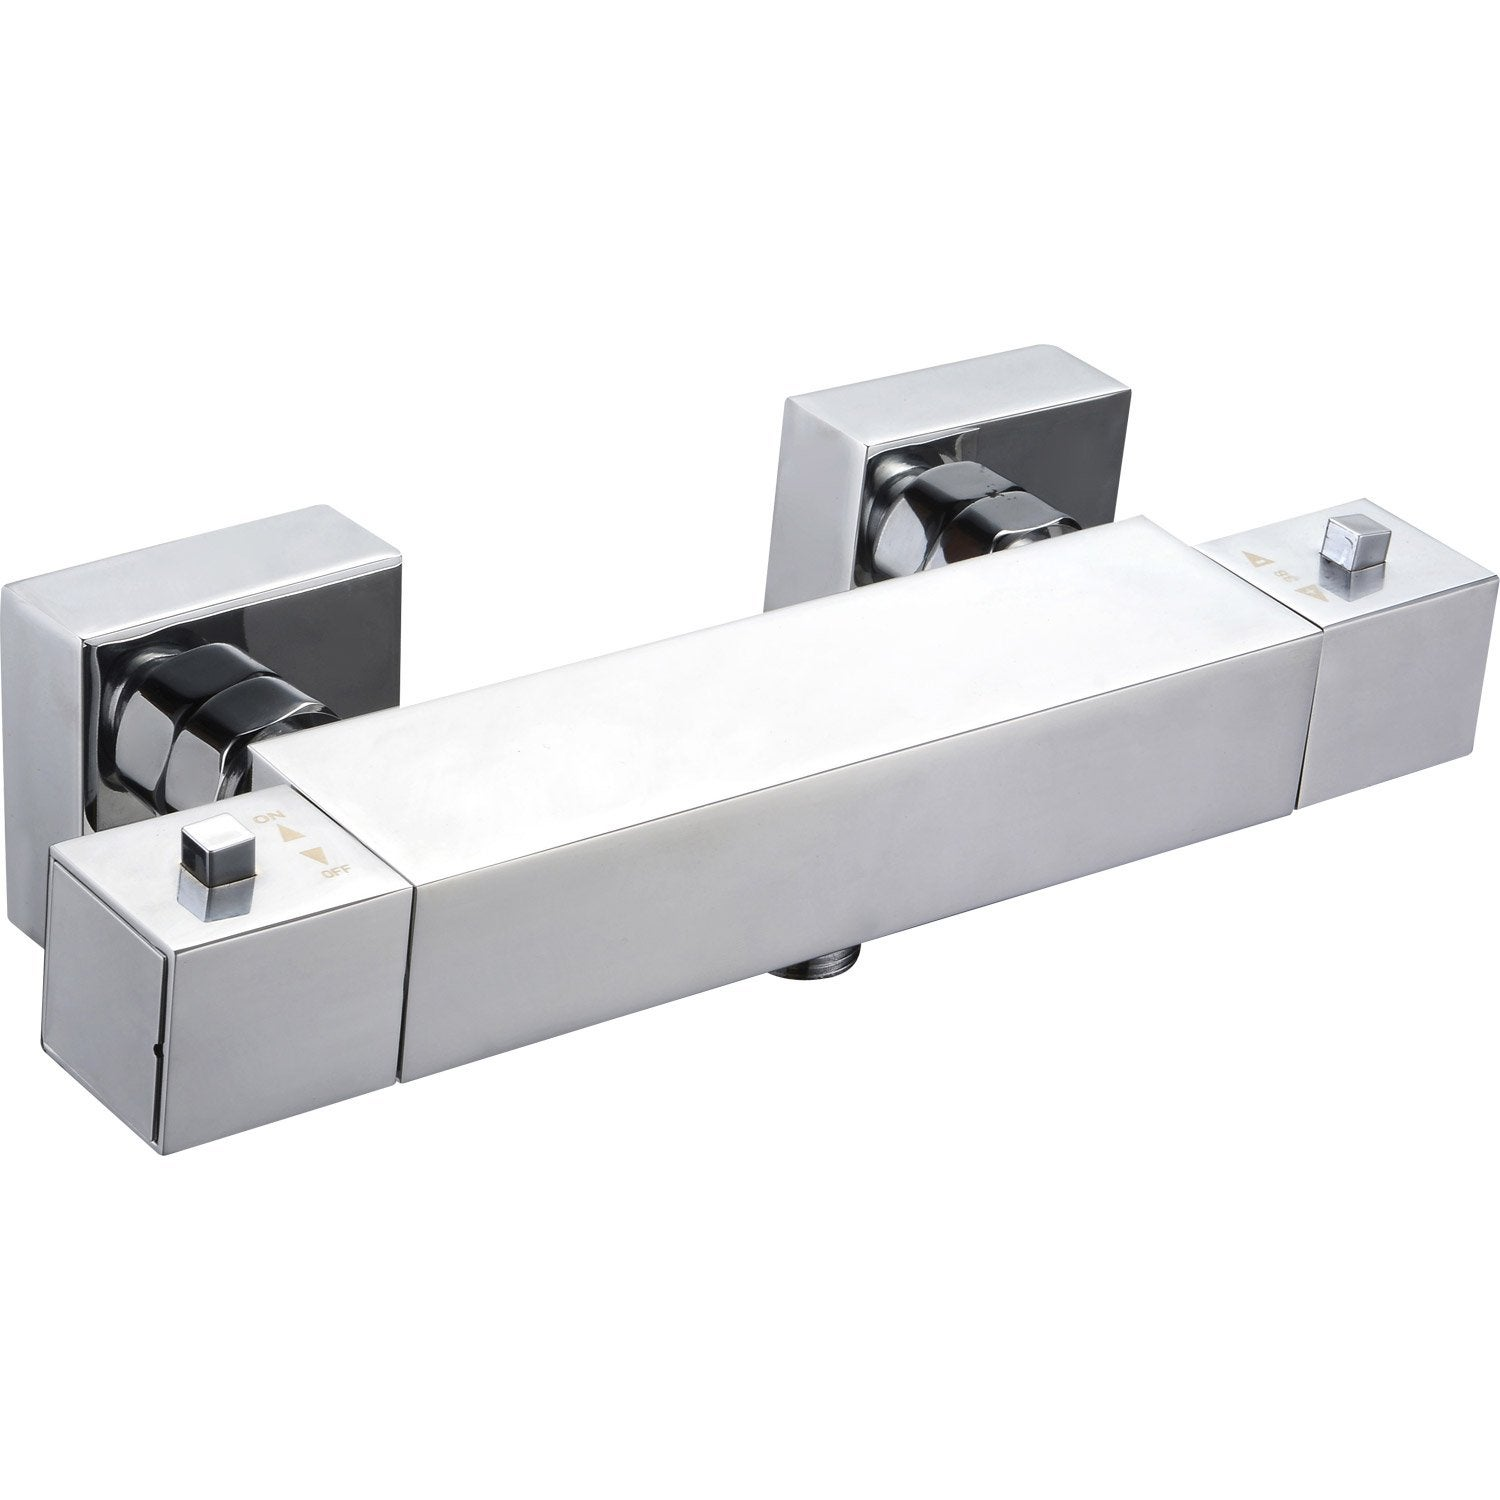 Mitigeur thermostatique de douche chrom sensea luka leroy merlin - Leroy merlin pommeau de douche ...